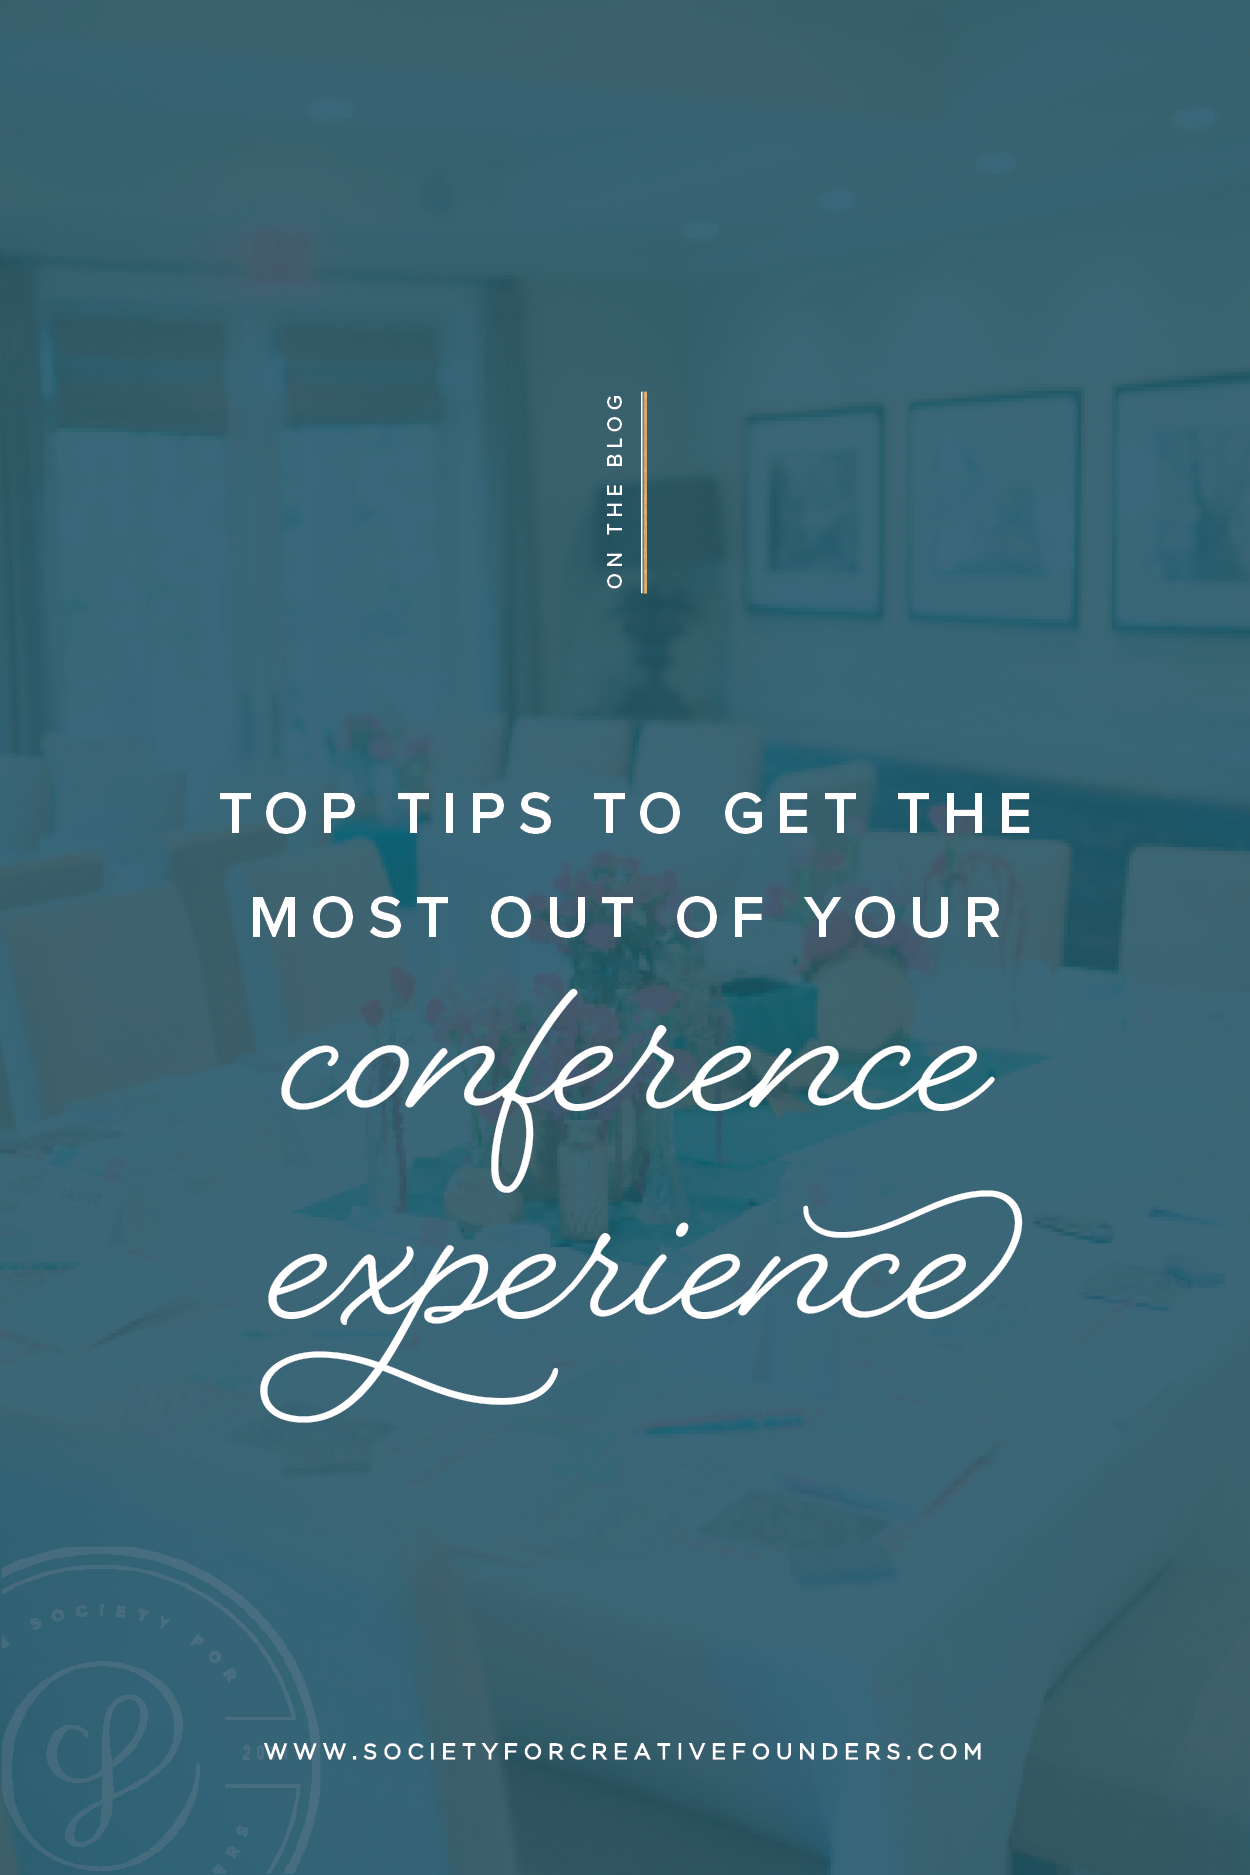 Ten Tips to Get the Most out of a Conference Experience - Society for Creative Founders